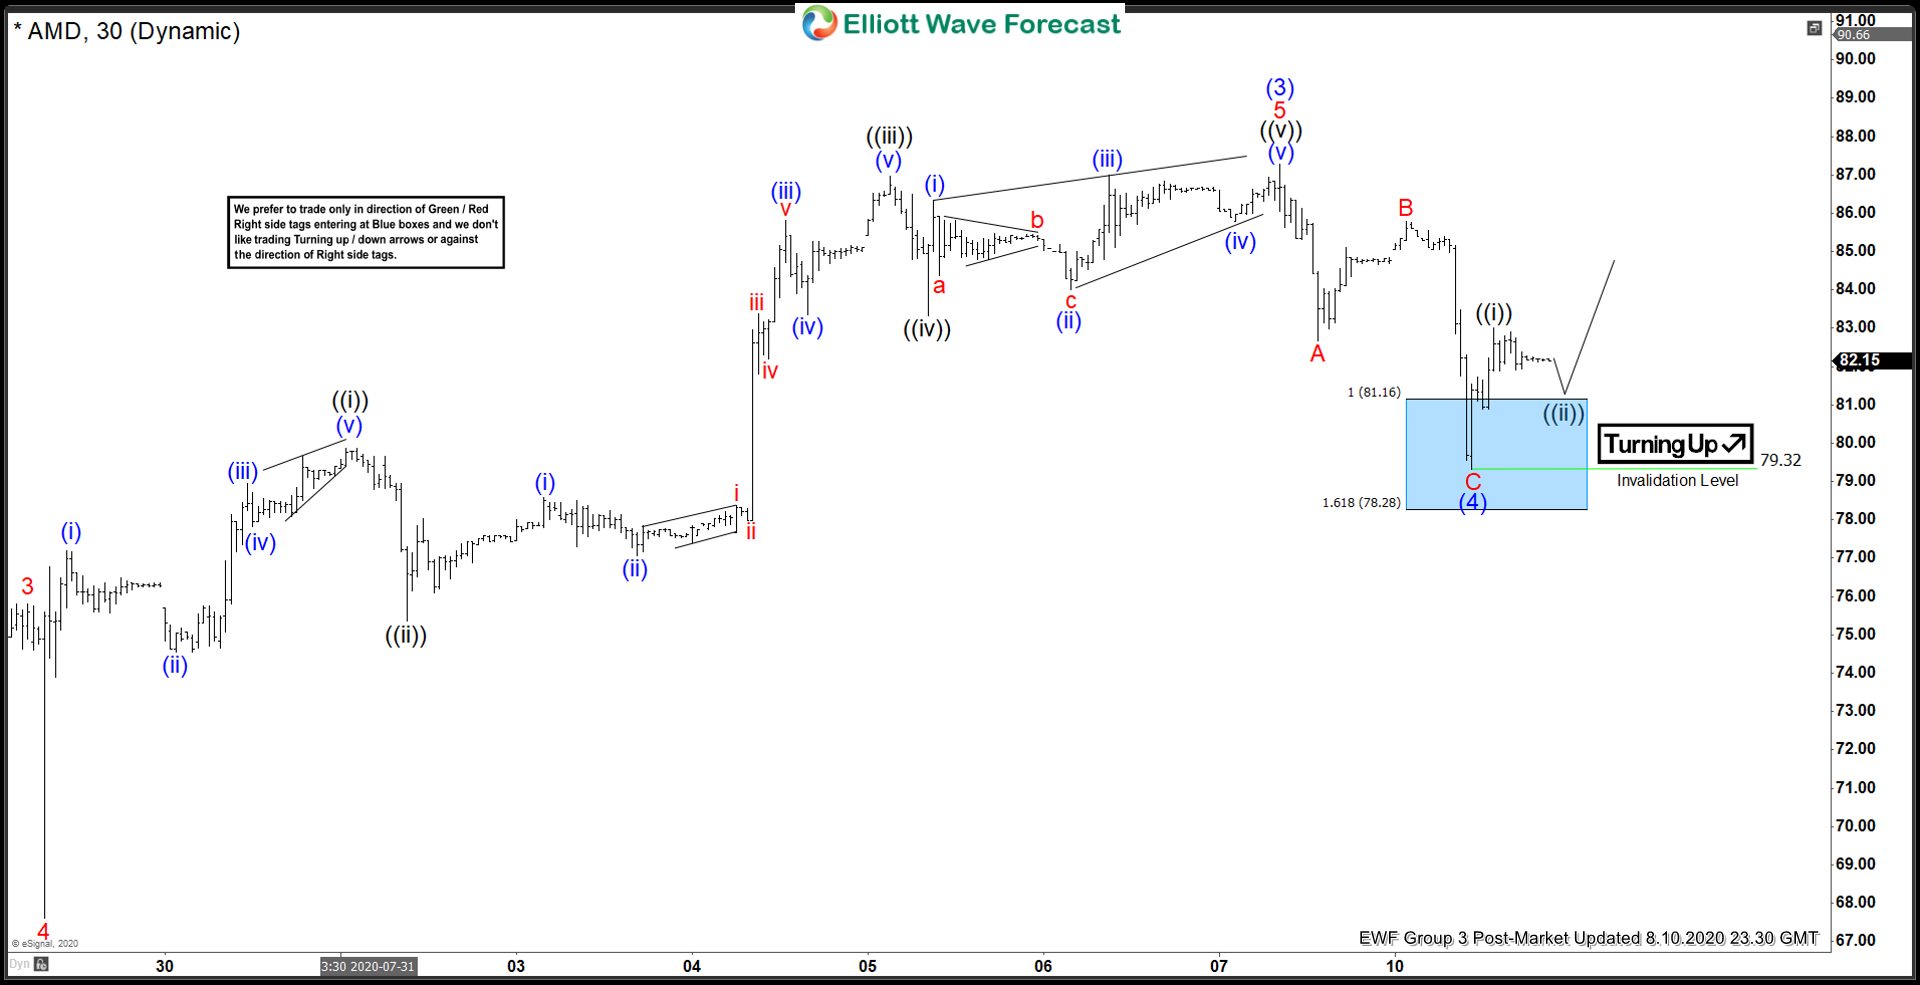 Elliott Wave View: More upside in Advance Micro Devices (AMD)